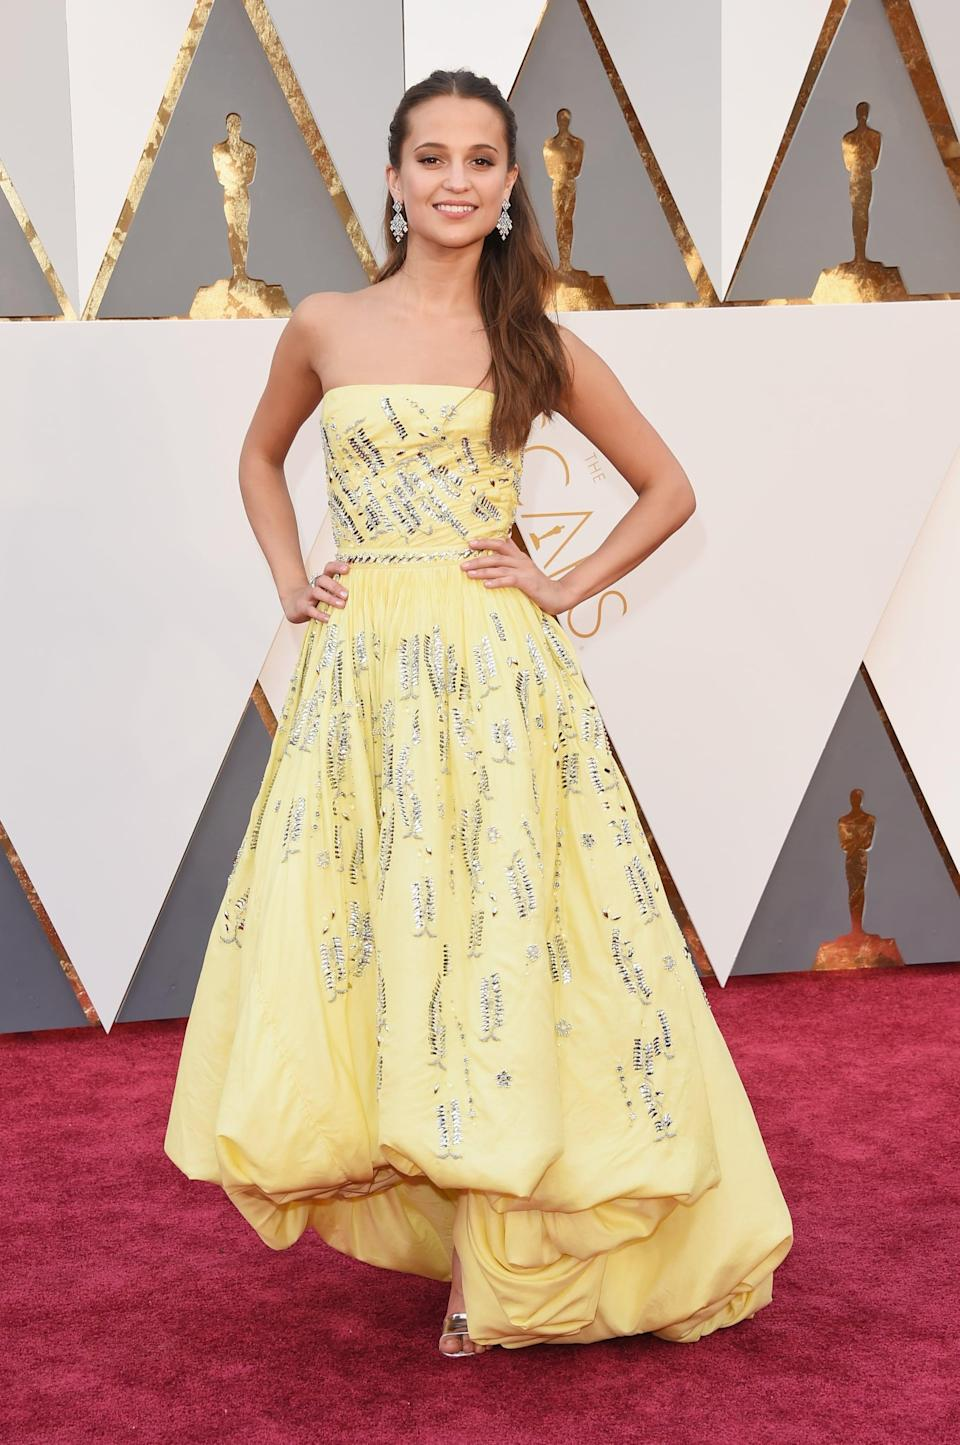 <p>Alicia Vikander wore a pastel yellow custom Louis Vuitton dress with sparkly details at the Oscars in 2016.</p>